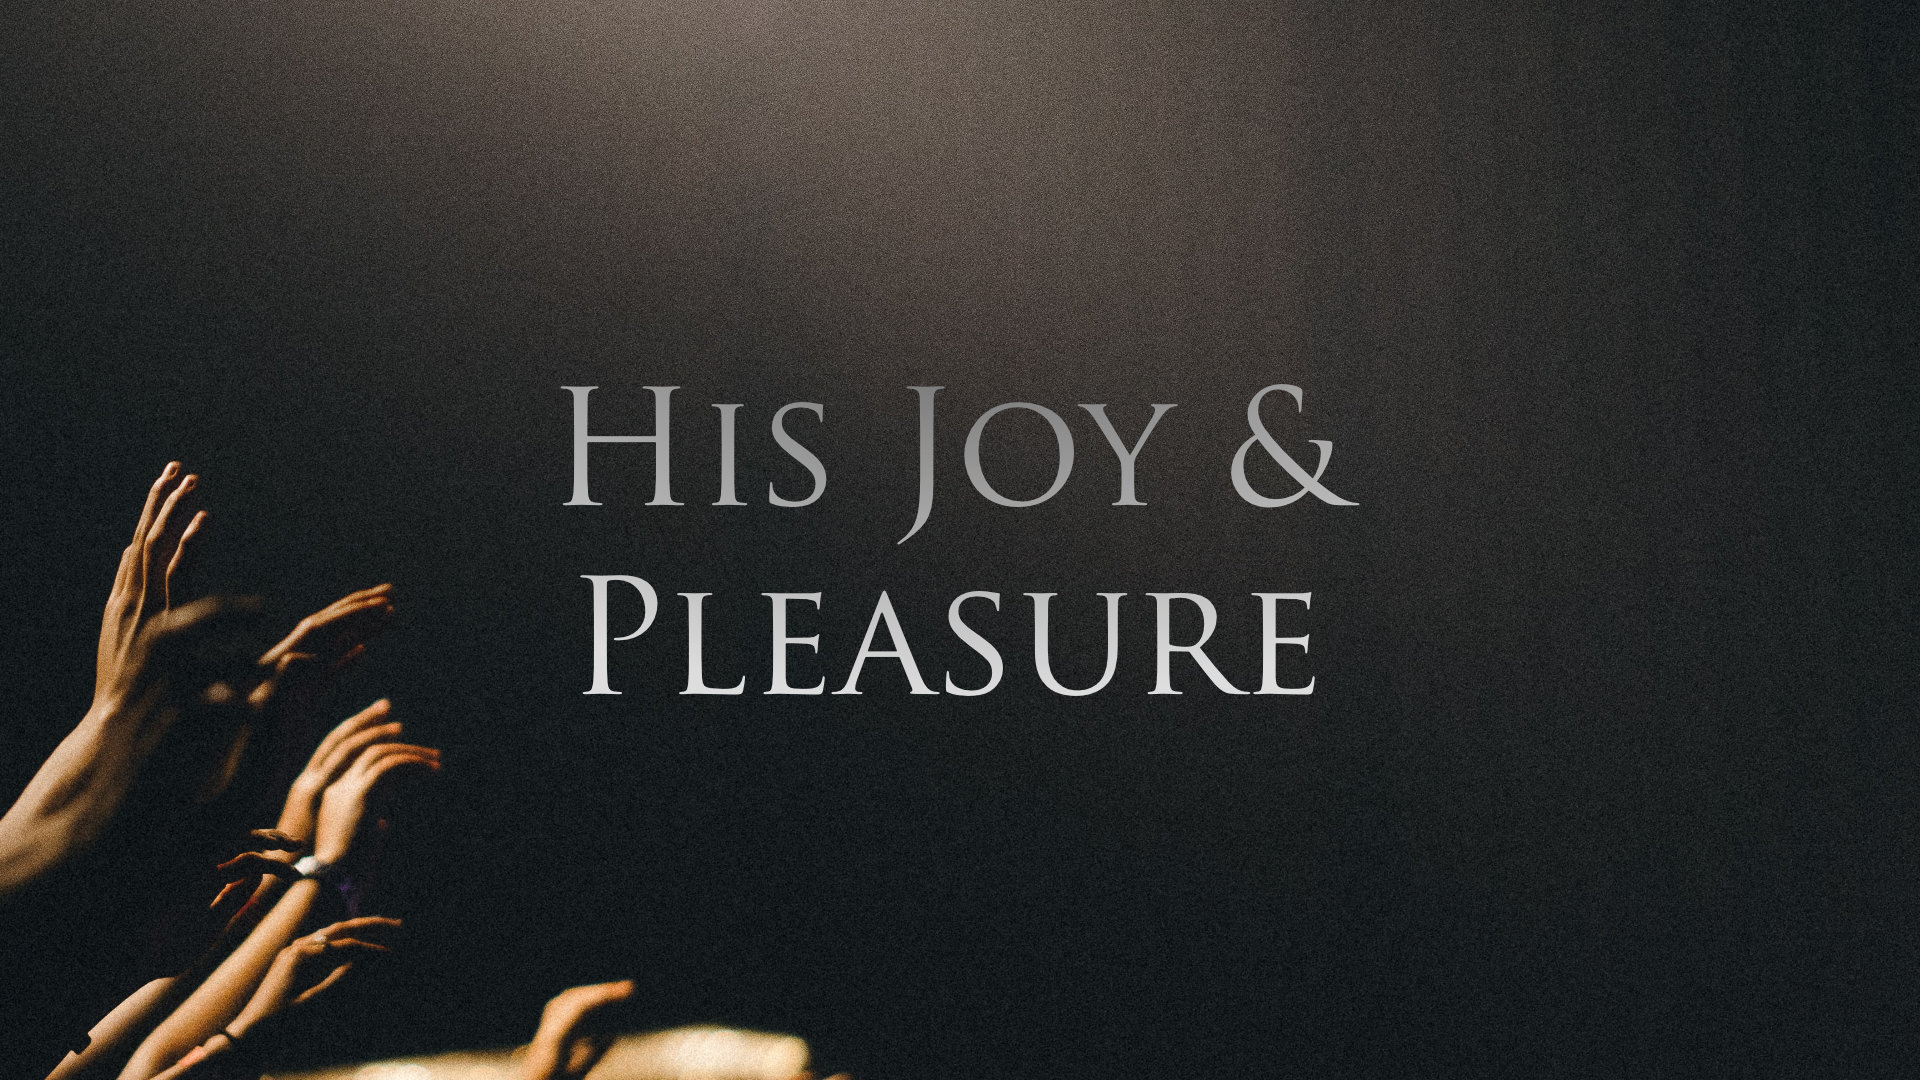 2019-08-25 His Joy & Pleasure.jpg